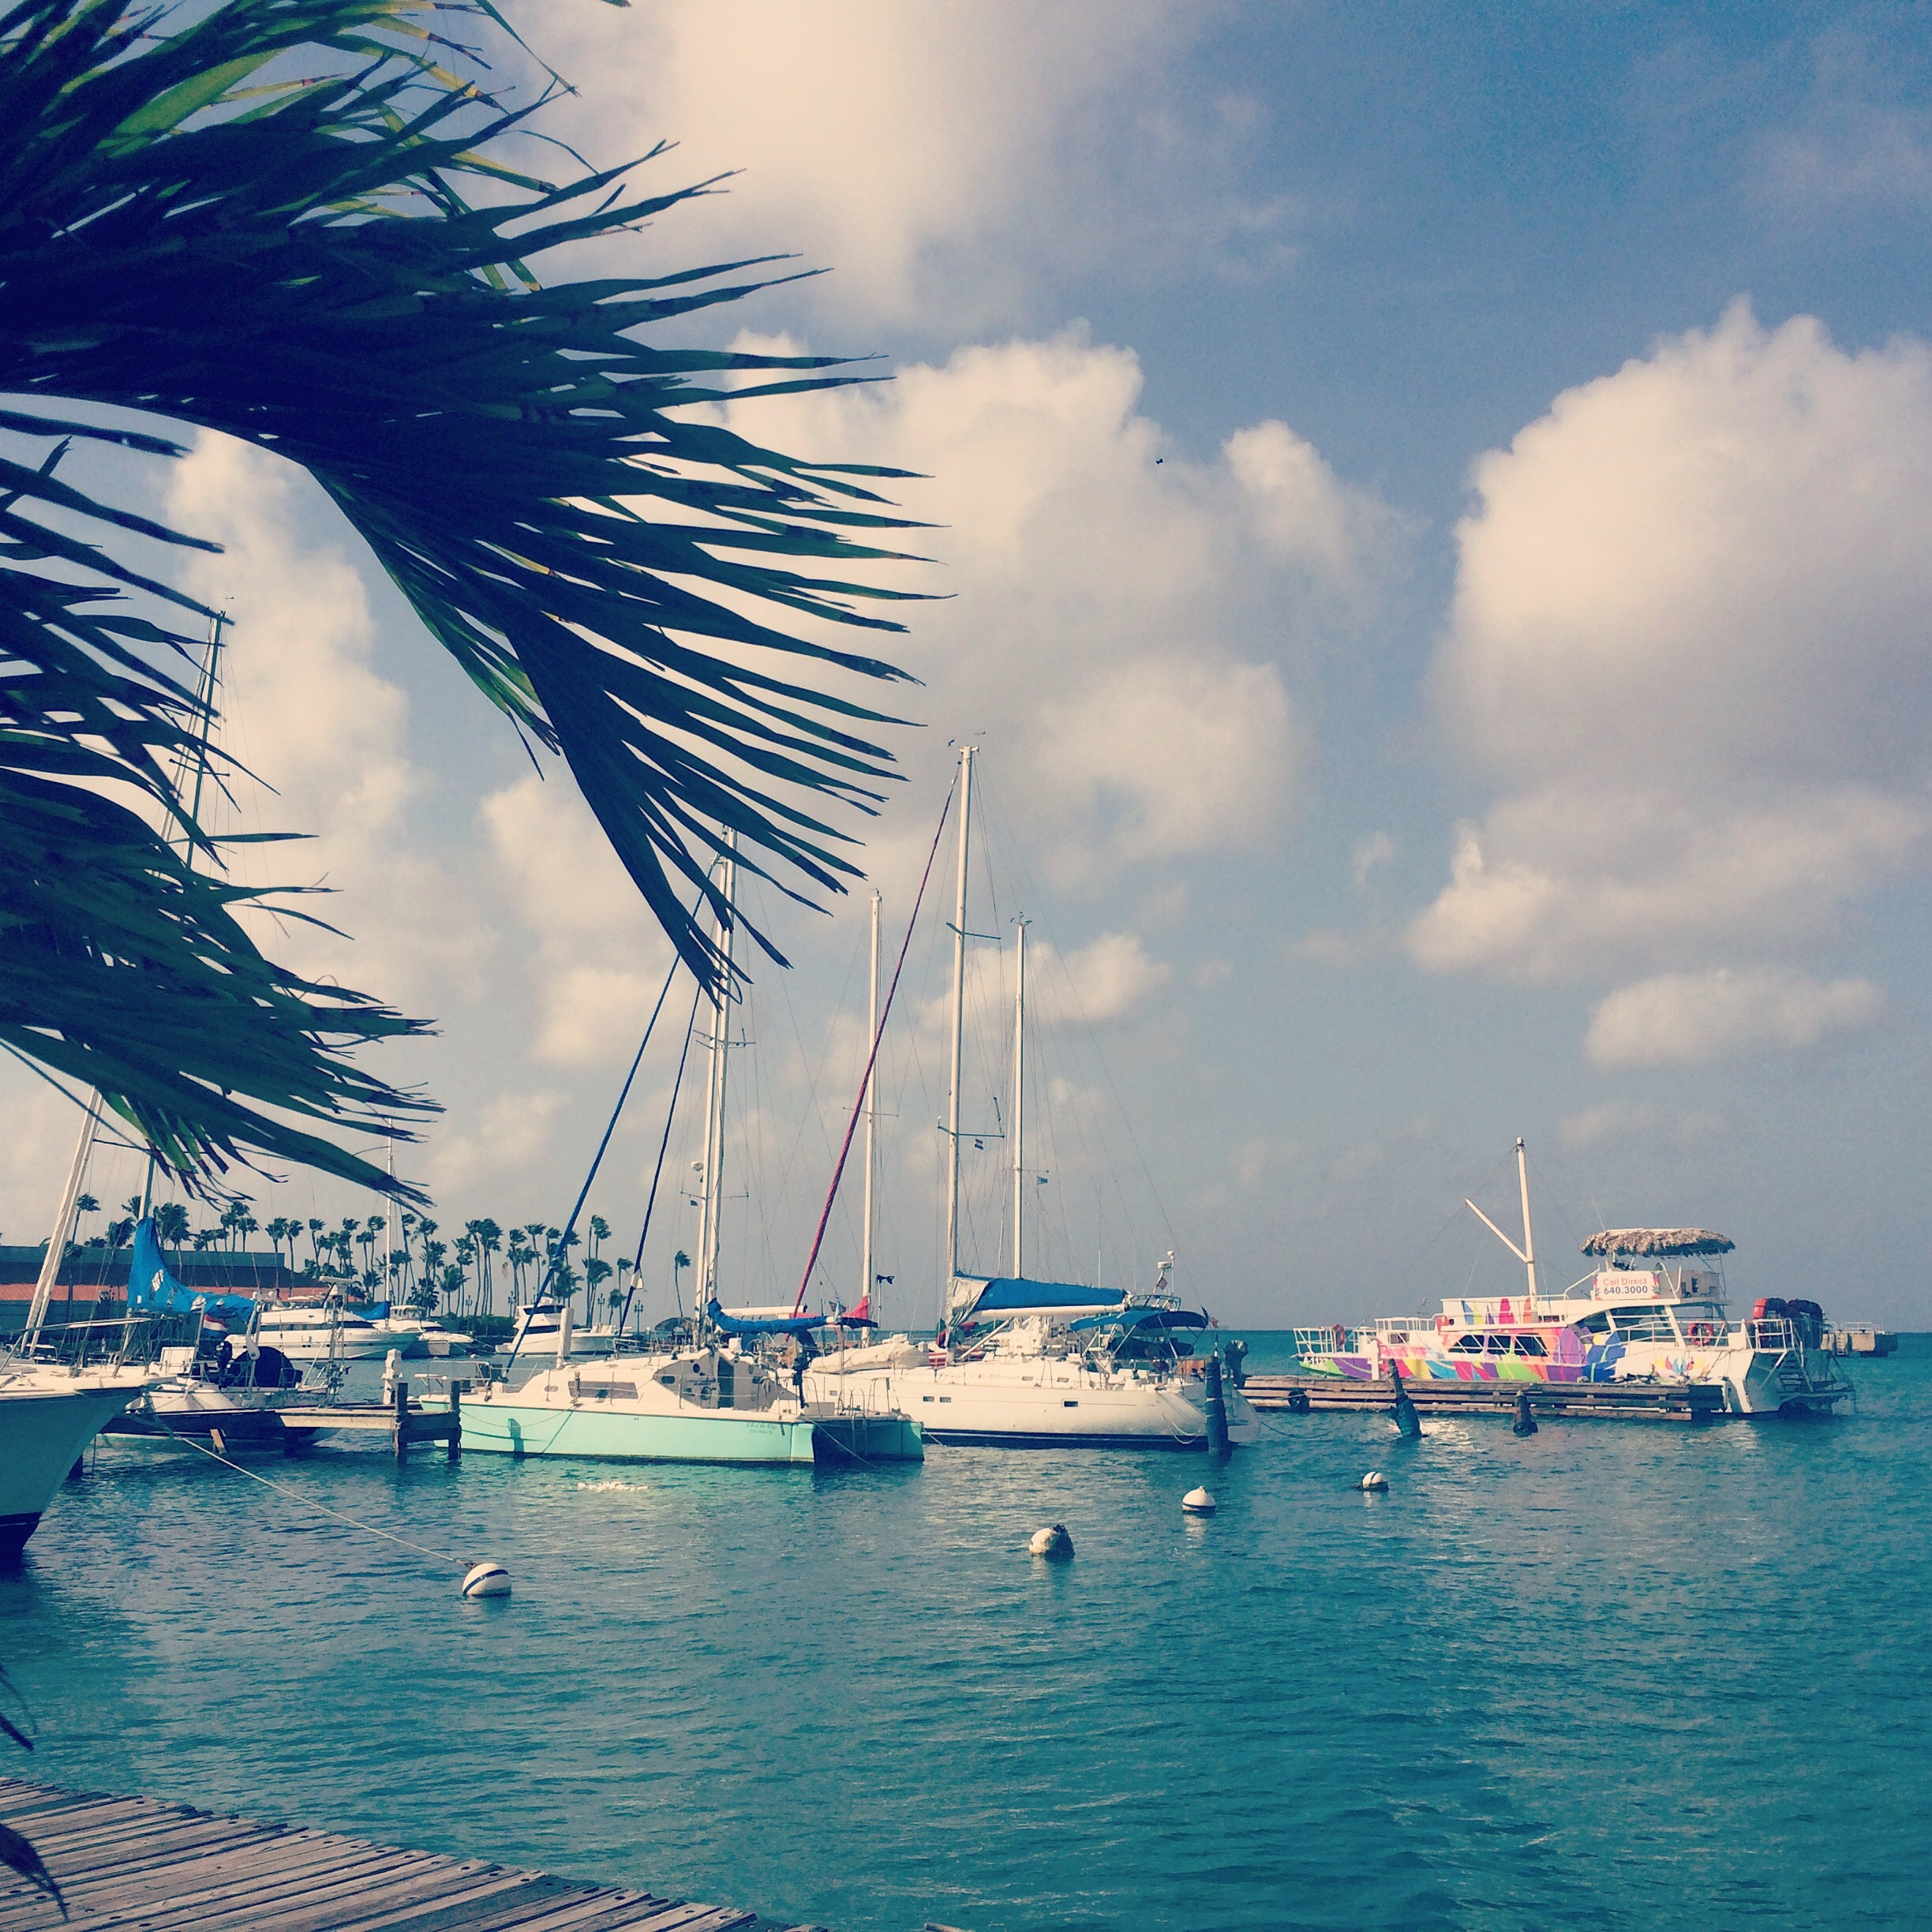 Boat Dock Aruba by KARMA for a cure